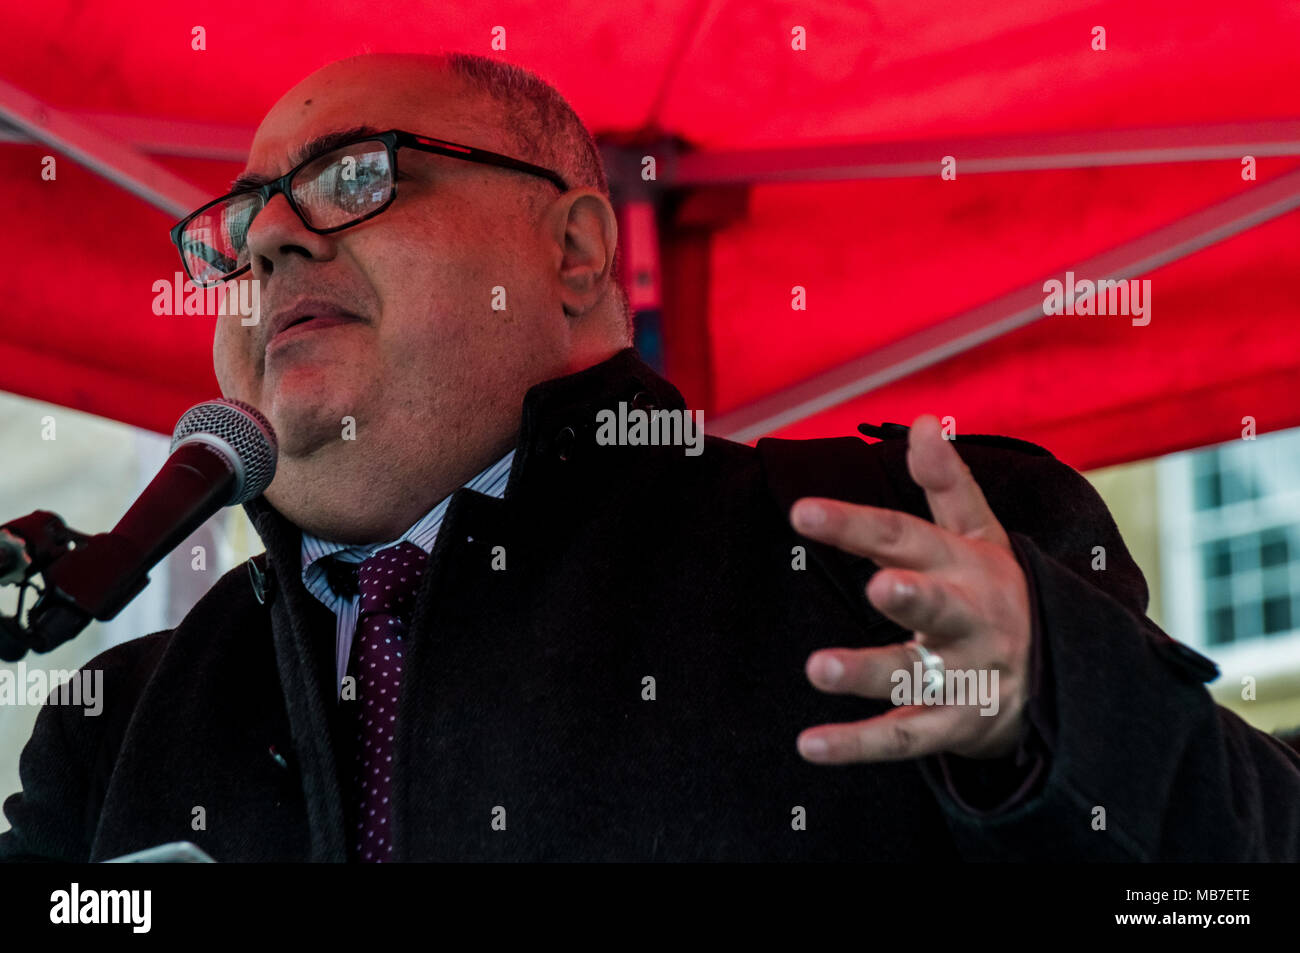 April 7, 2018 - London, UK. 7th April 2018. Kamel Hawwash, Palestine Solidarity Campaign, speaks at the protest at Downing St condemning the shooting by Israeli snipers of peaceful unarmed Palestinian protesters on the first day of a peaceful protest, the Great March of Return, at the separation wall in Gaza on Land Day, 30th March. Live fire by the Israelis killed 17 and wounded over 750. A further nine Palestinians including one journalist were killed yesterday and 1,350 injured, around 400 by live fire, with around 25 in a critical condition. There were many speeches condemning the Israe - Stock Image